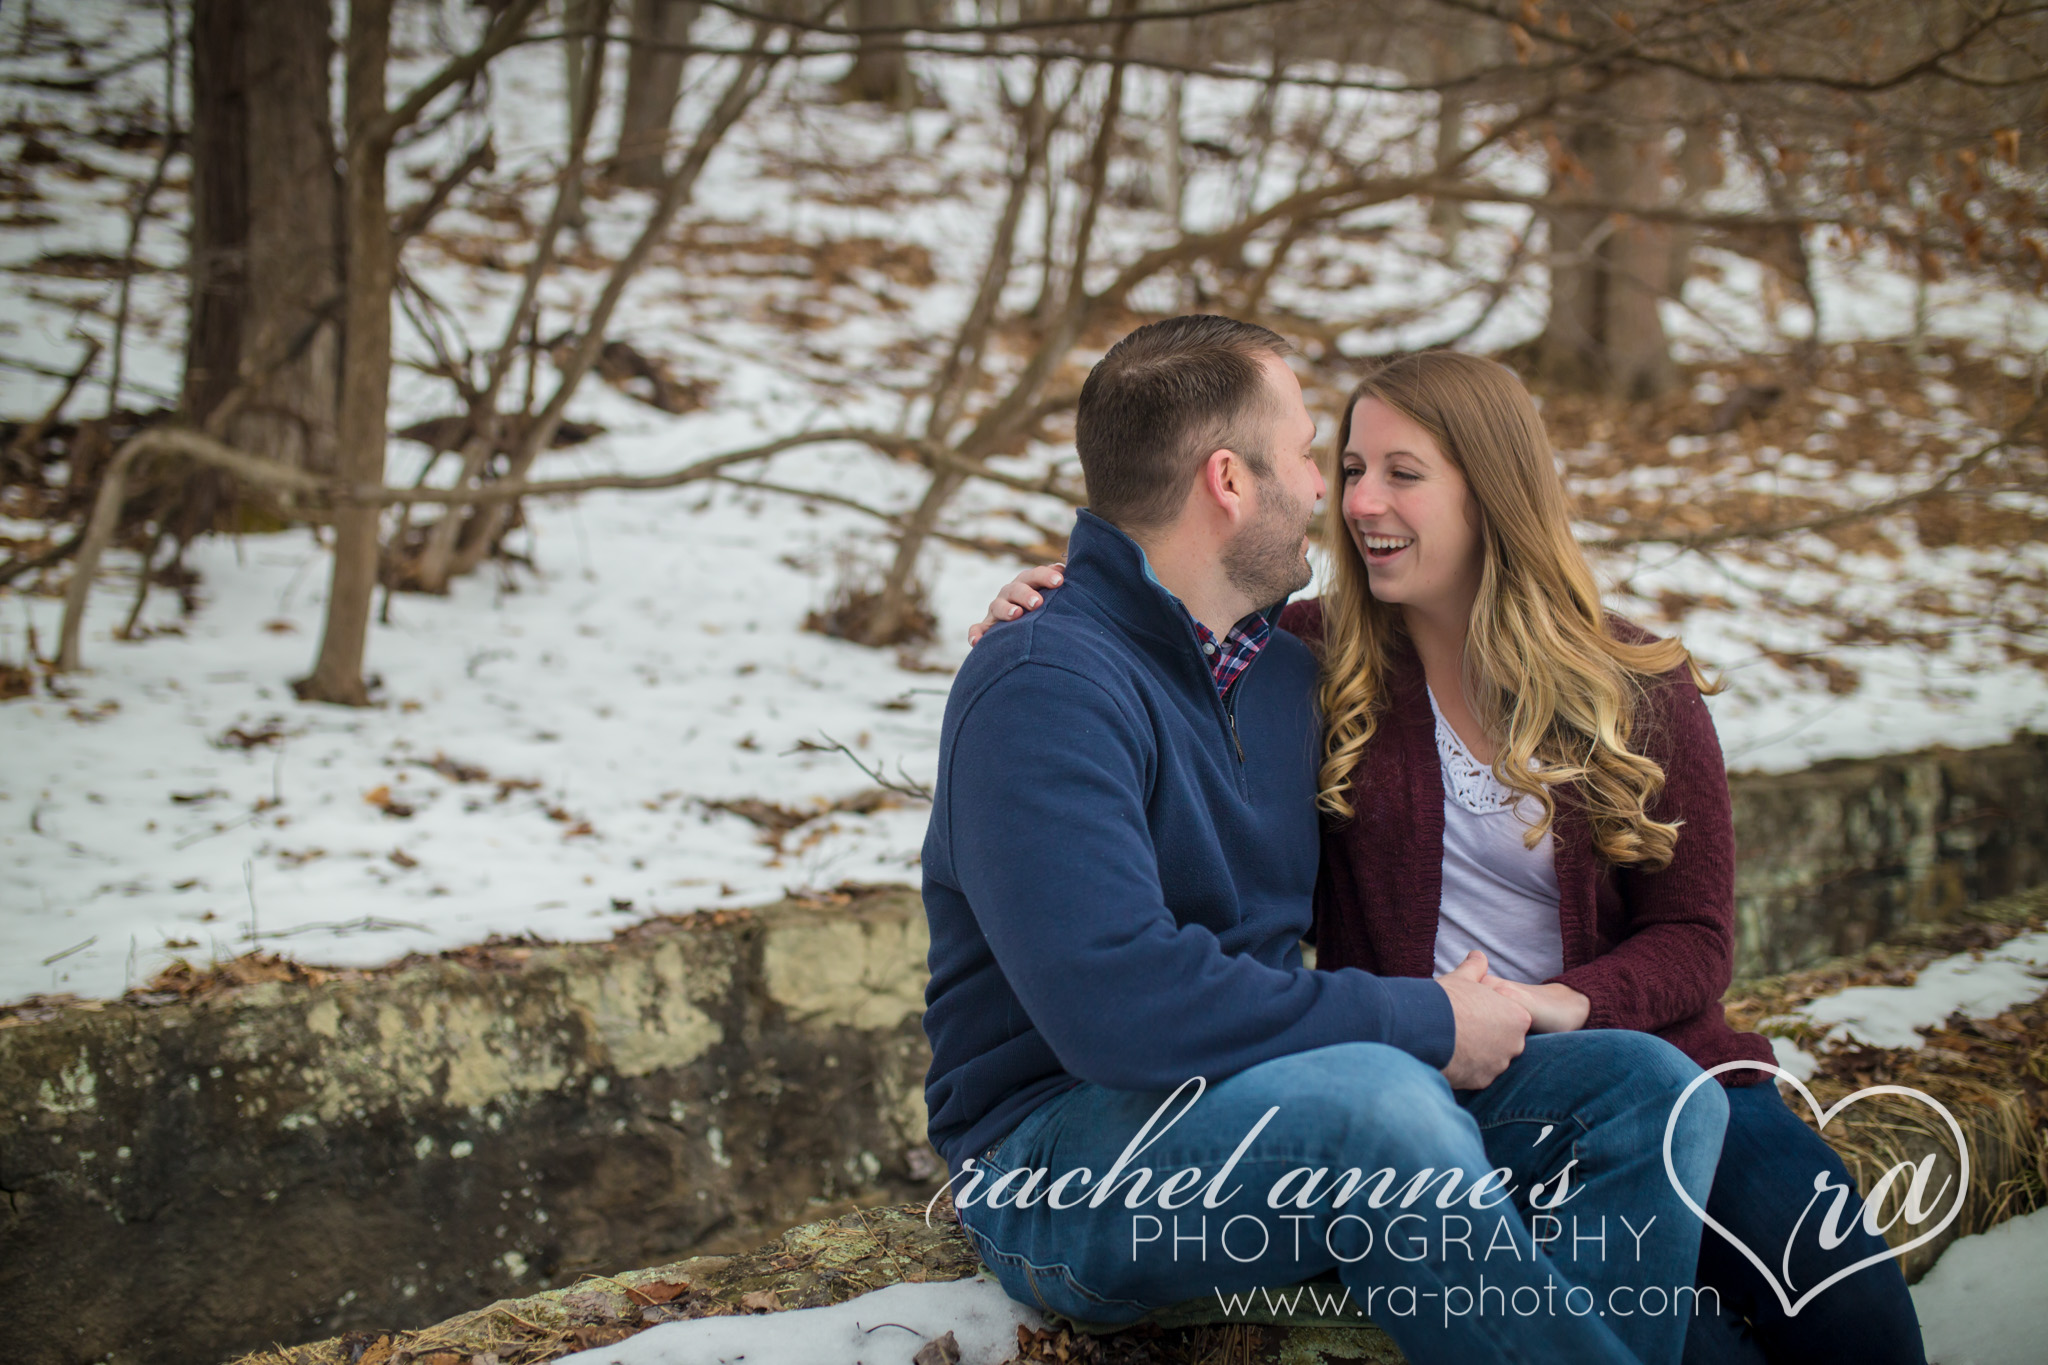 038-JKM-DUBOIS-PA-ENGAGEMENT-PHOTOGRAPHY.jpg